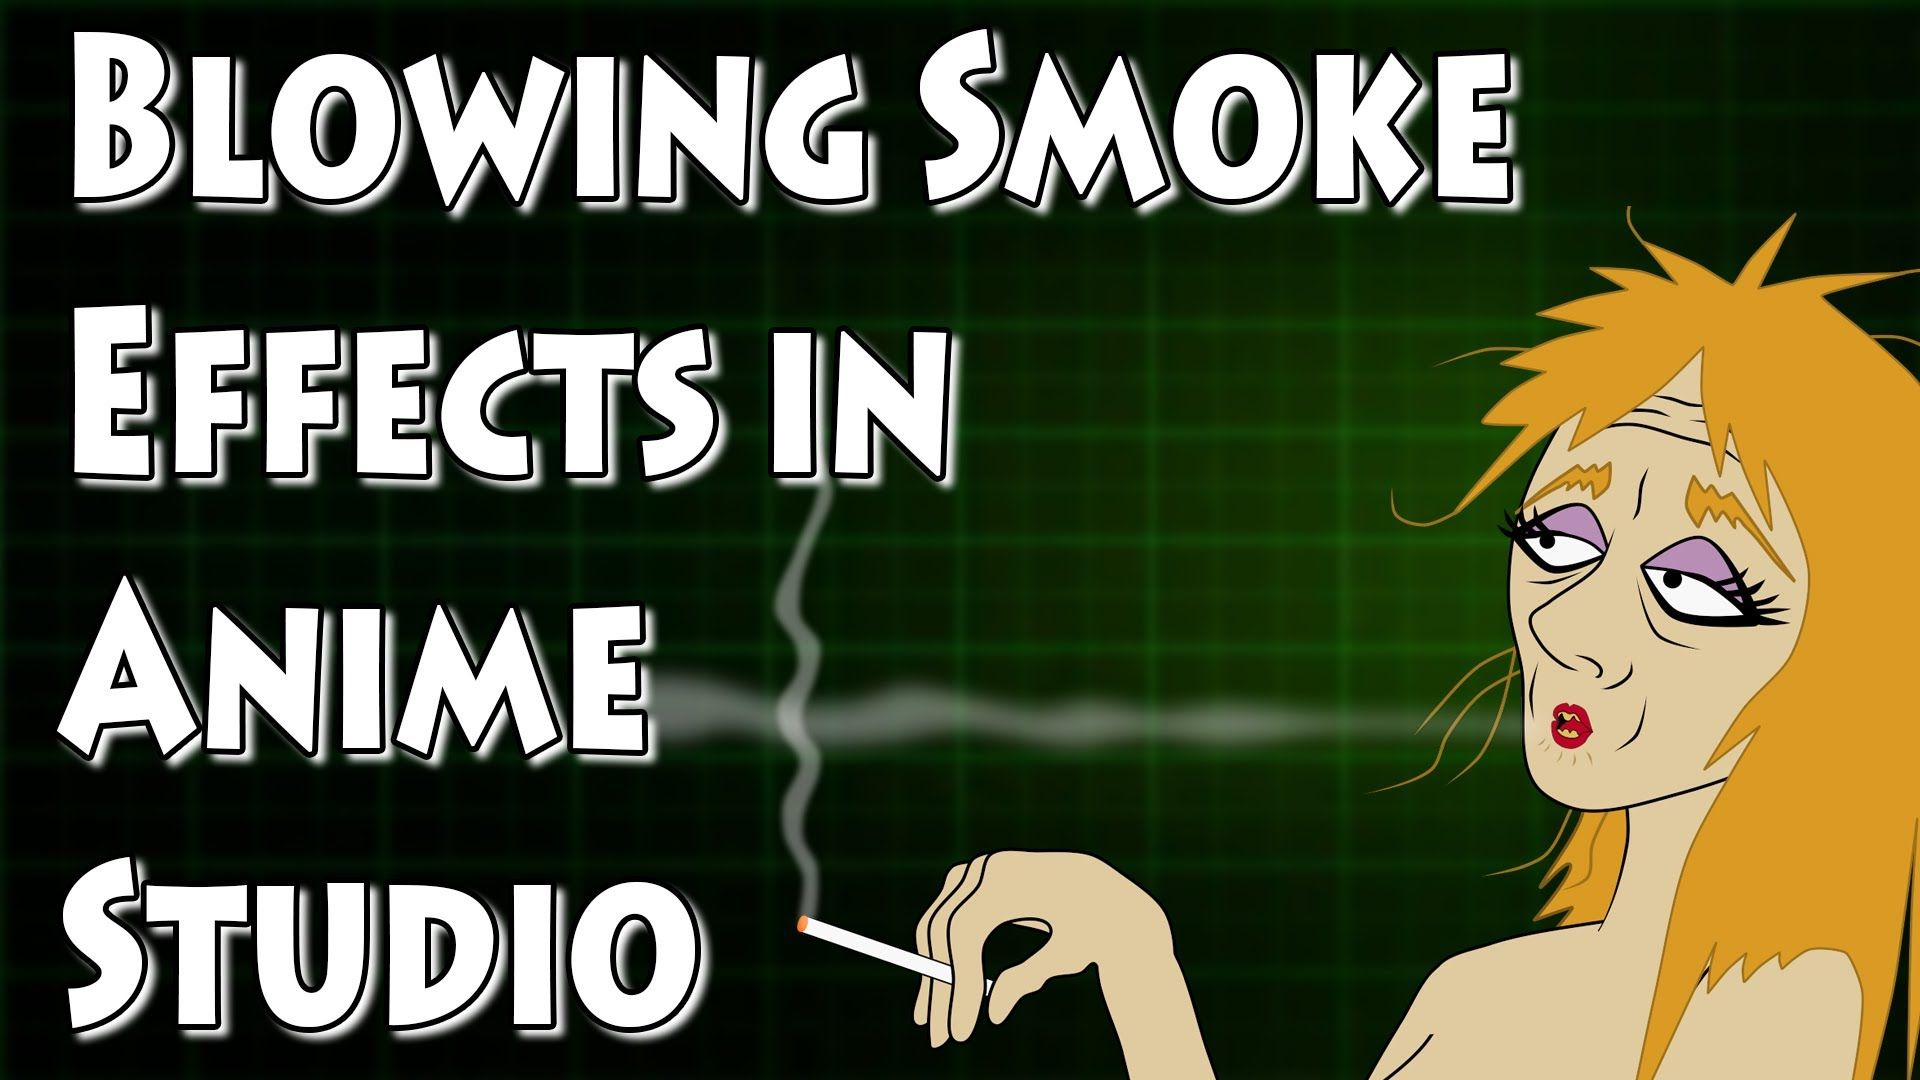 Animating Blowing Smoke in Anime Studio From cigarettes